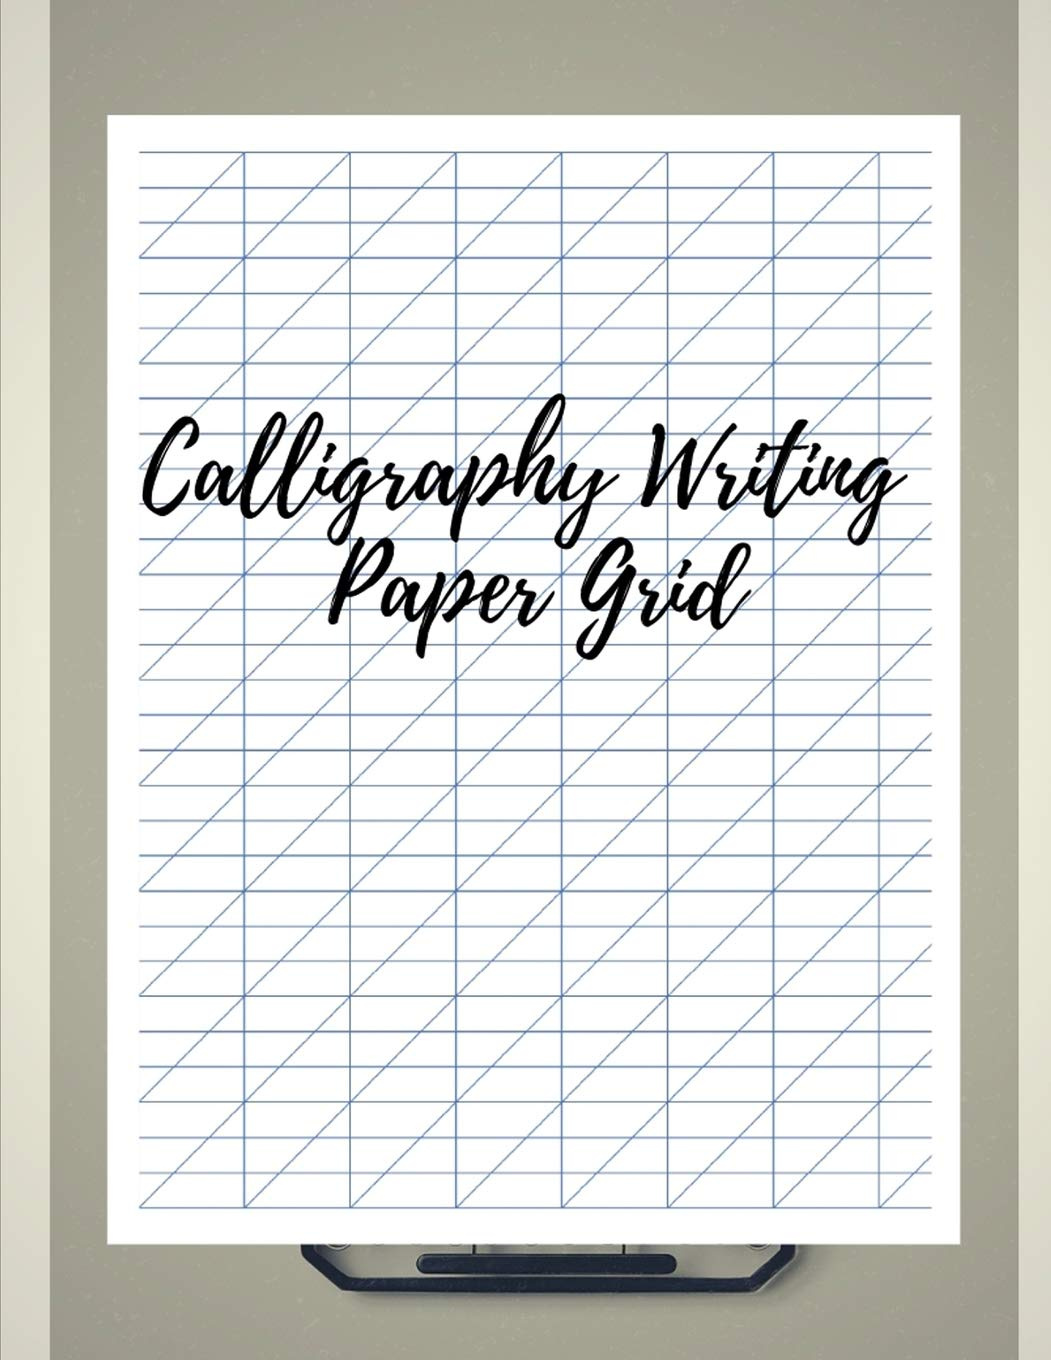 Calligraphy Writing Paper Grid: Arabic Alligraphy For